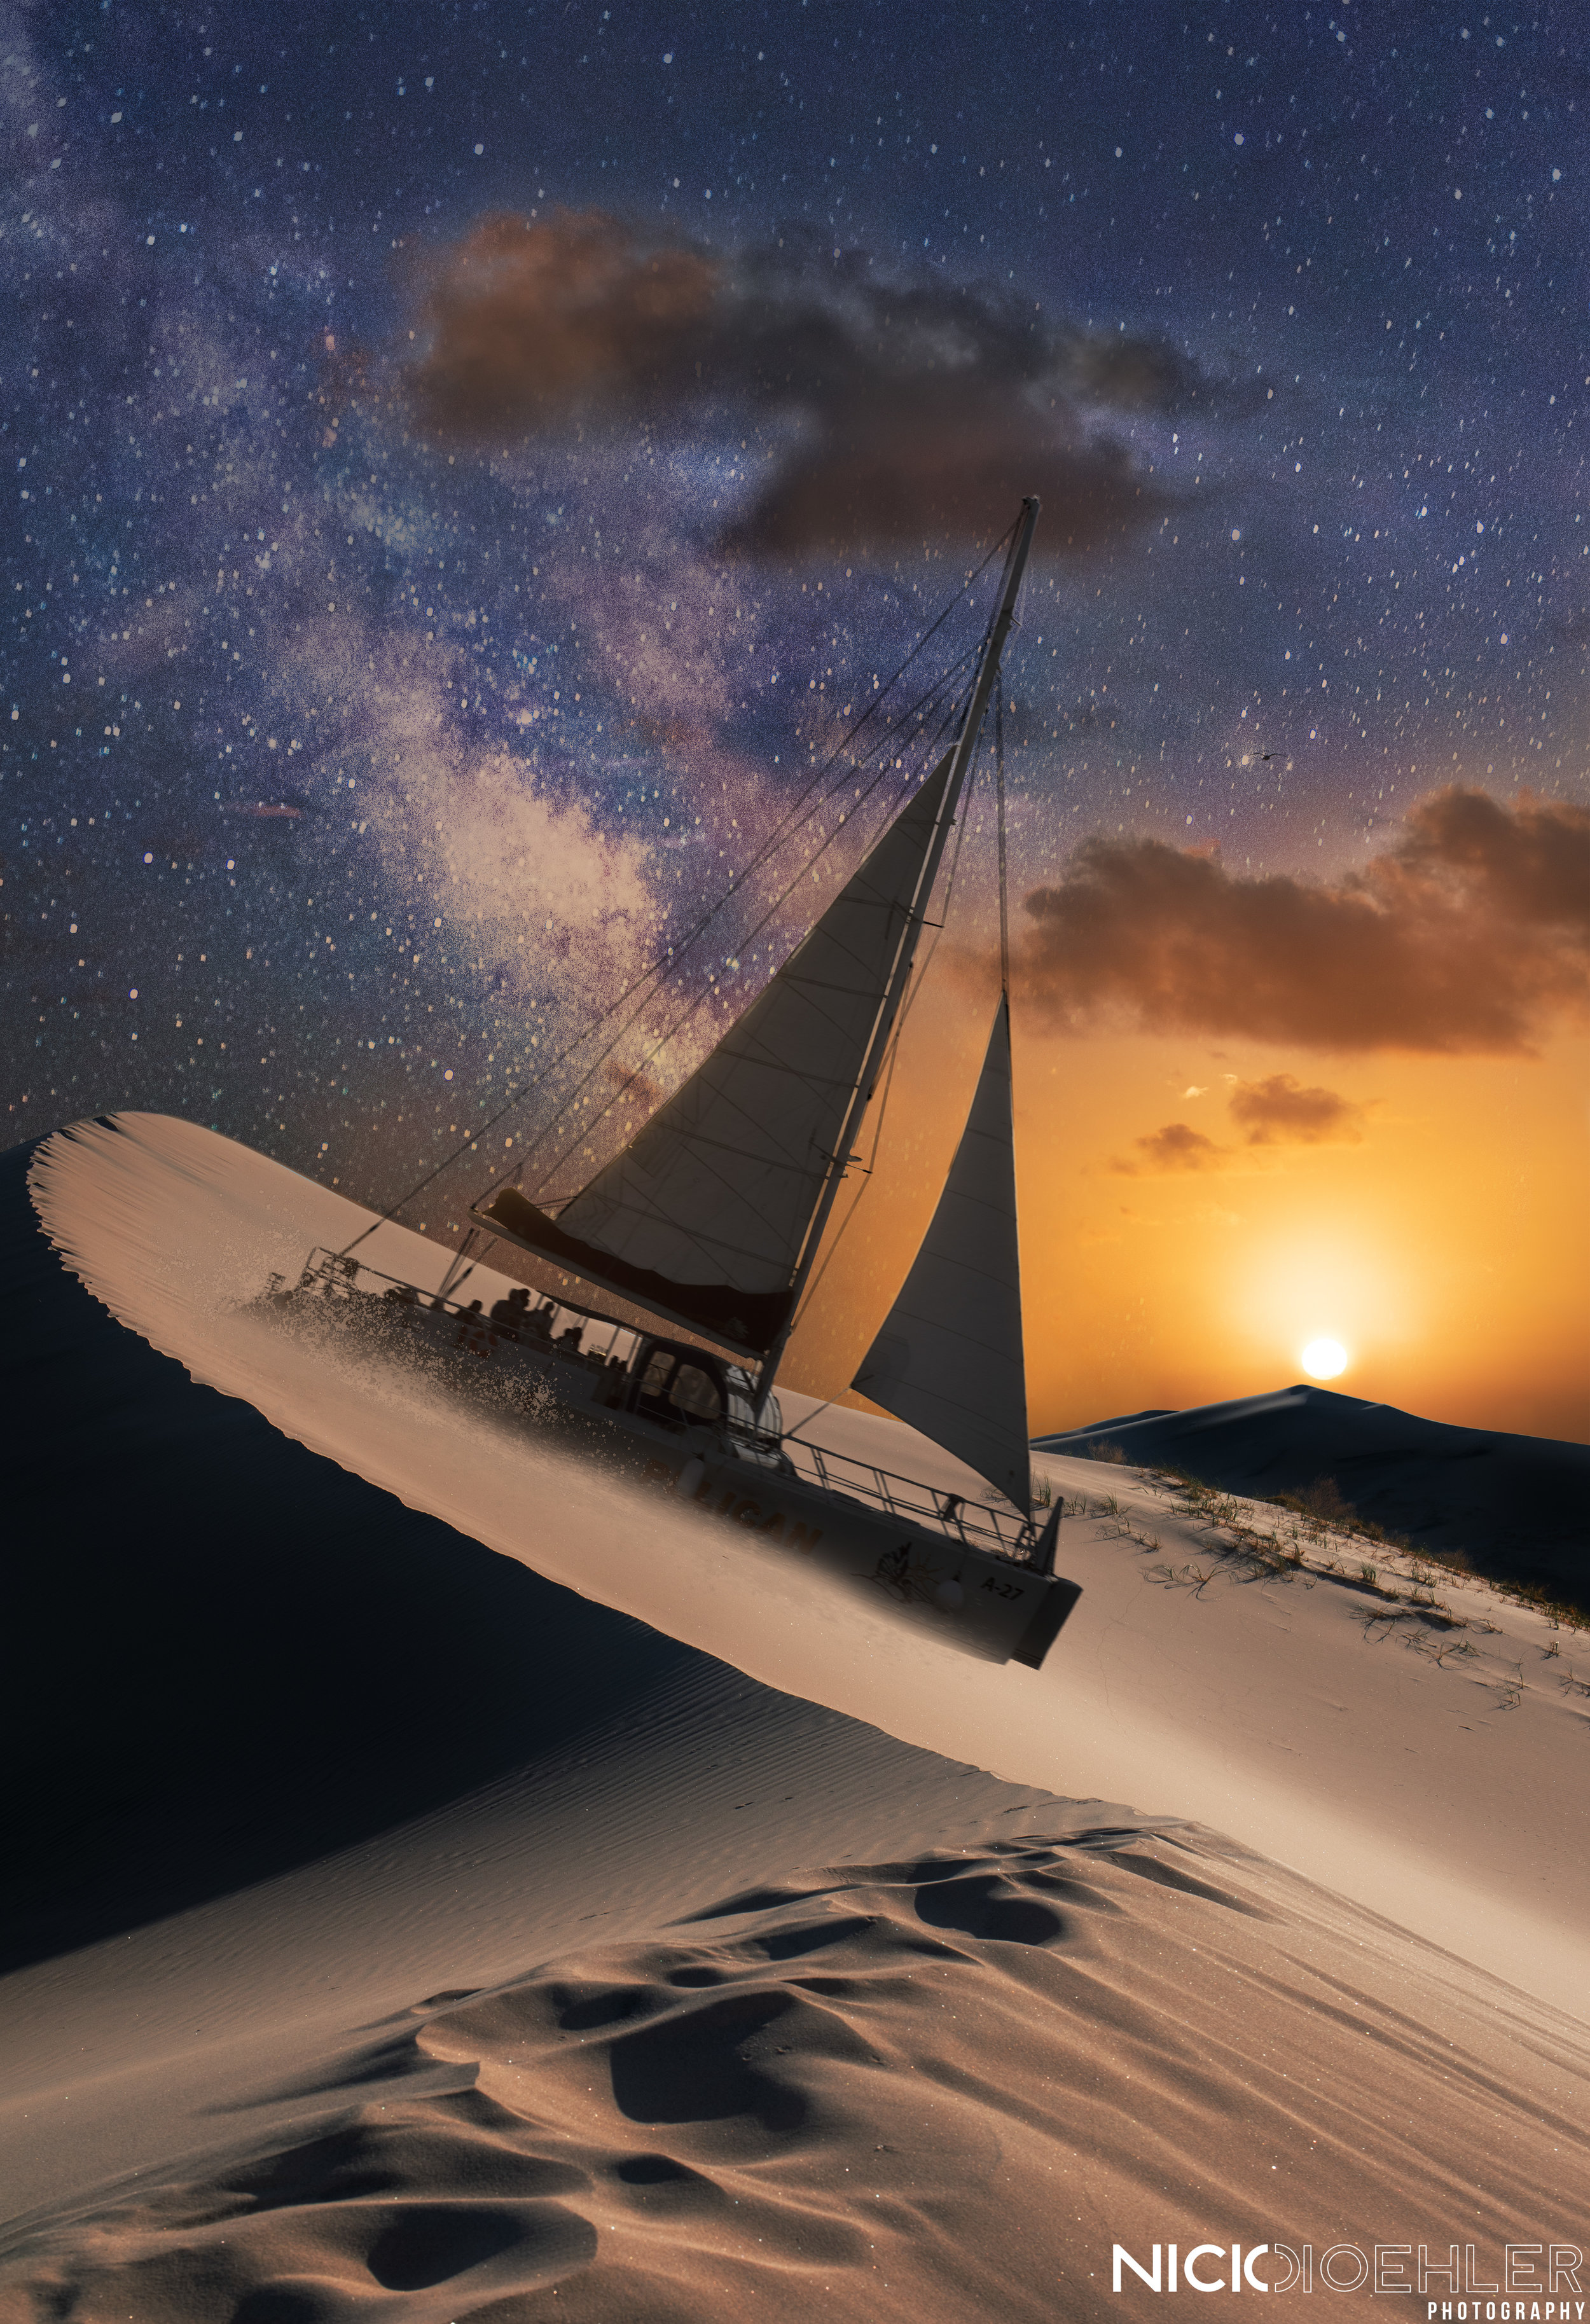 Desert Sails - This was the first one I made, it included sand dunes, the milky way, and a sailboat. This creation was to fill it all with Irony. Sailing on sand, and Stars during Sunset. I mainly masked and then did some color correction to fit the mood and scenery.